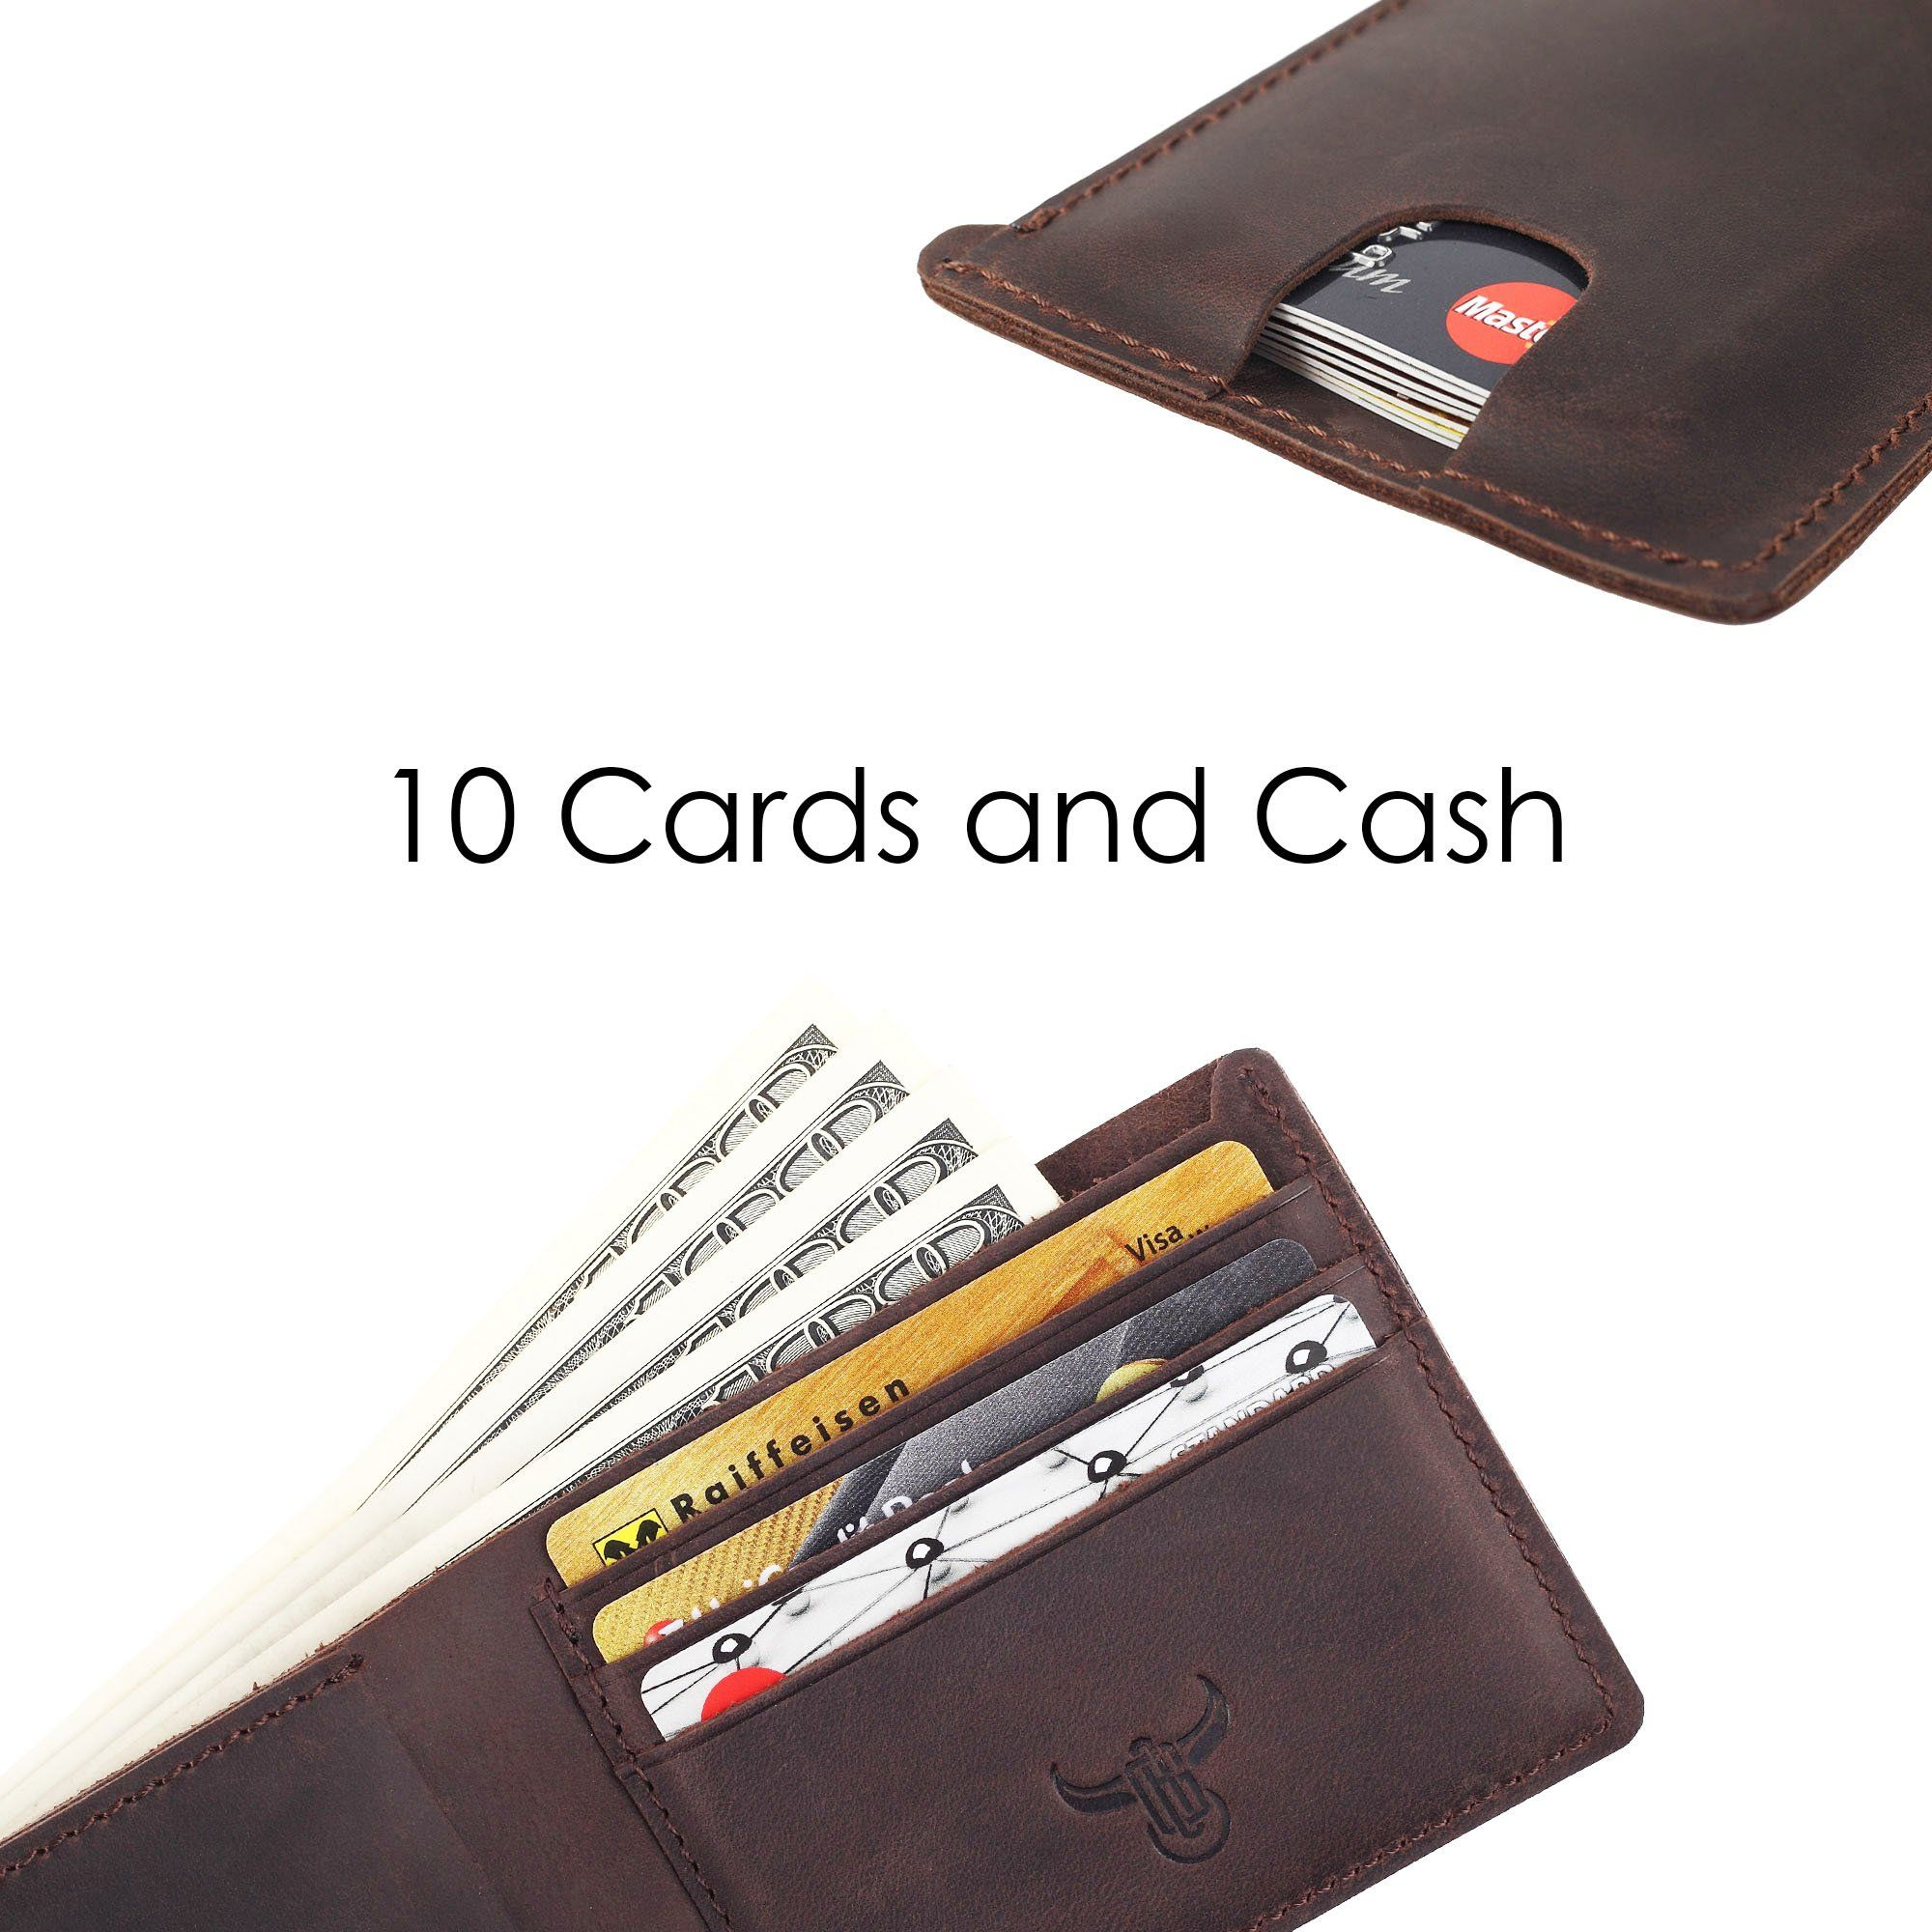 Real Leather Wallet Zipper Slim Coin Card Cash Note Holder Travel Gift Boxed